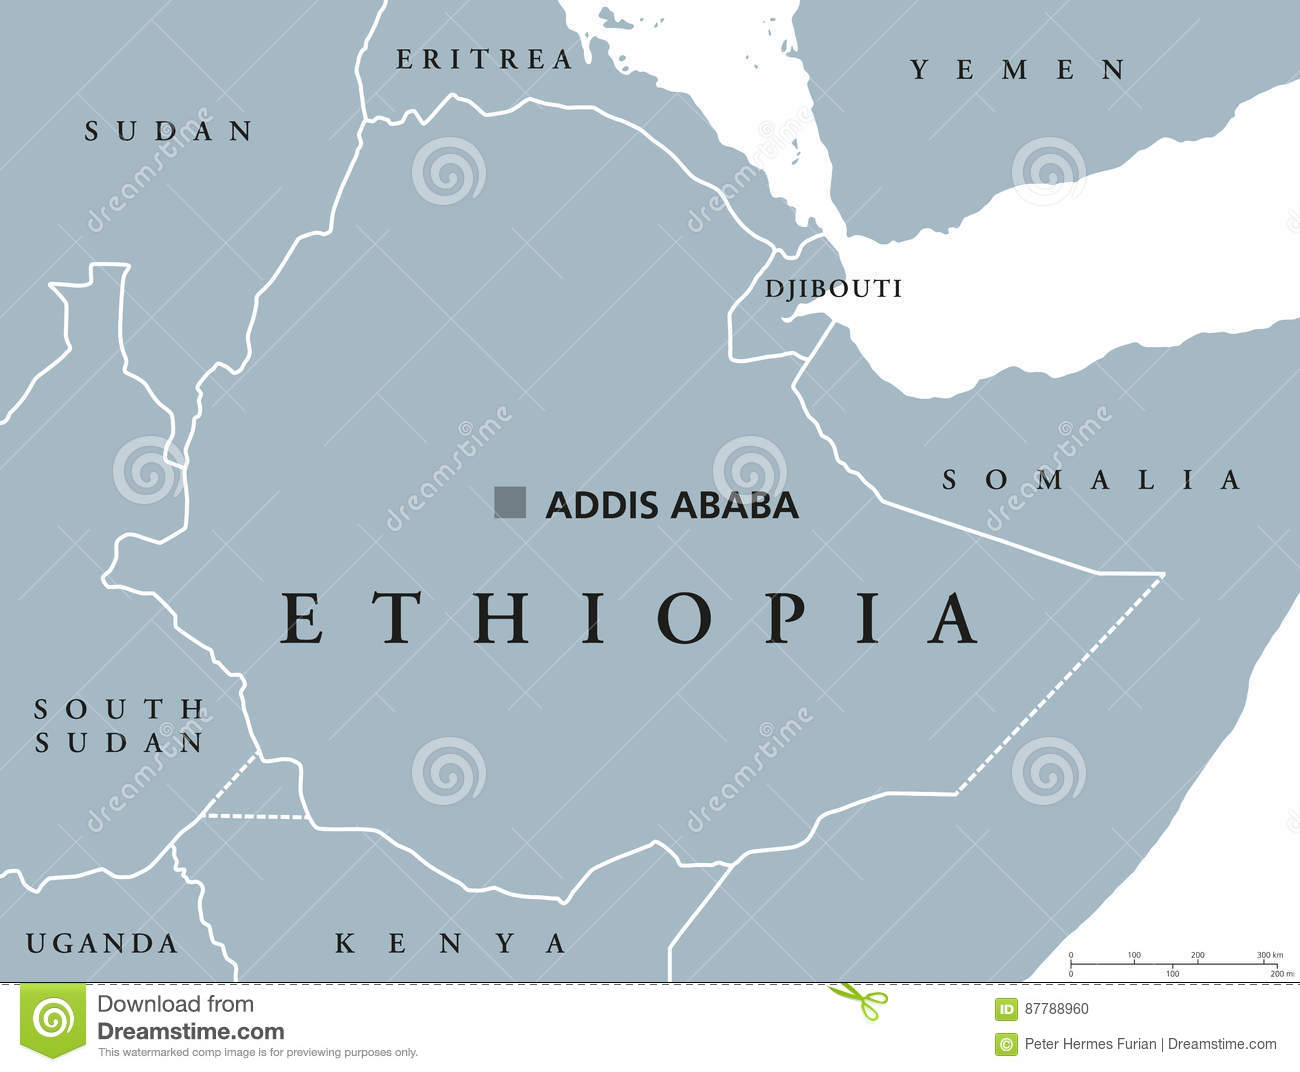 Ethiopia political map stock vector. Illustration of abyssinia ...